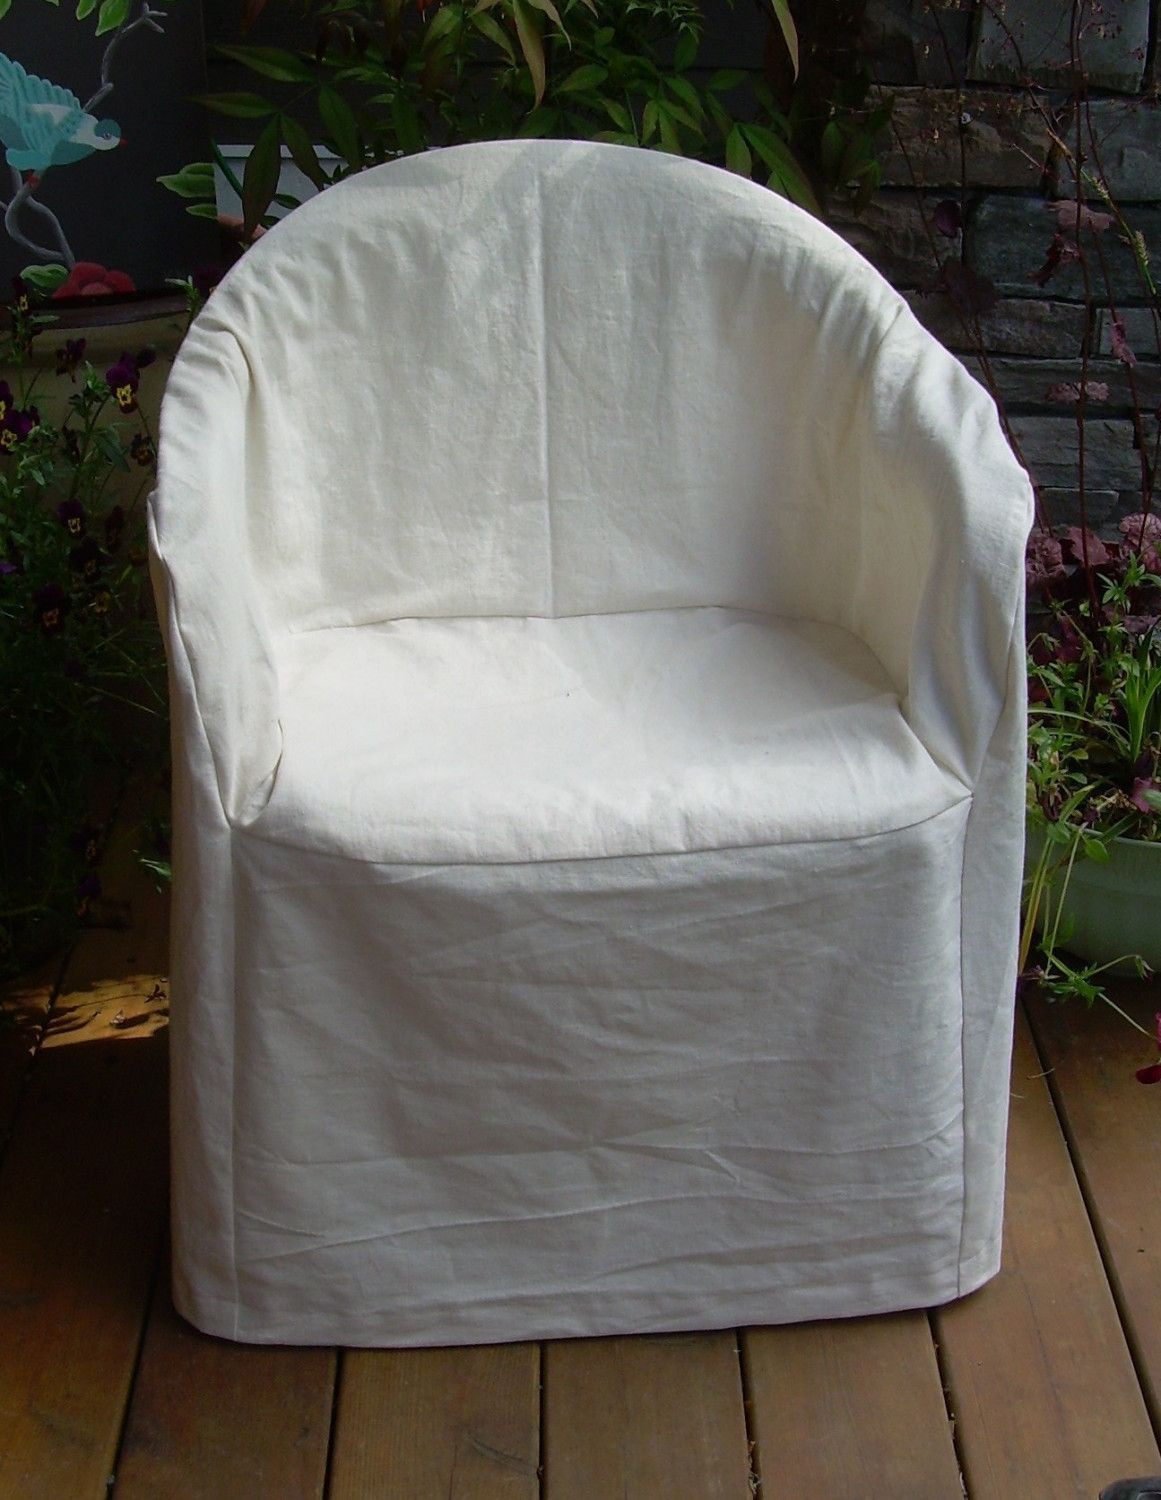 Barrel Chair Cover #5 - Custom Order - Resin Chair Organic Slipcover, Hemp Cotton, Furniture  Slipcovers. $95.00, Via Etsy.